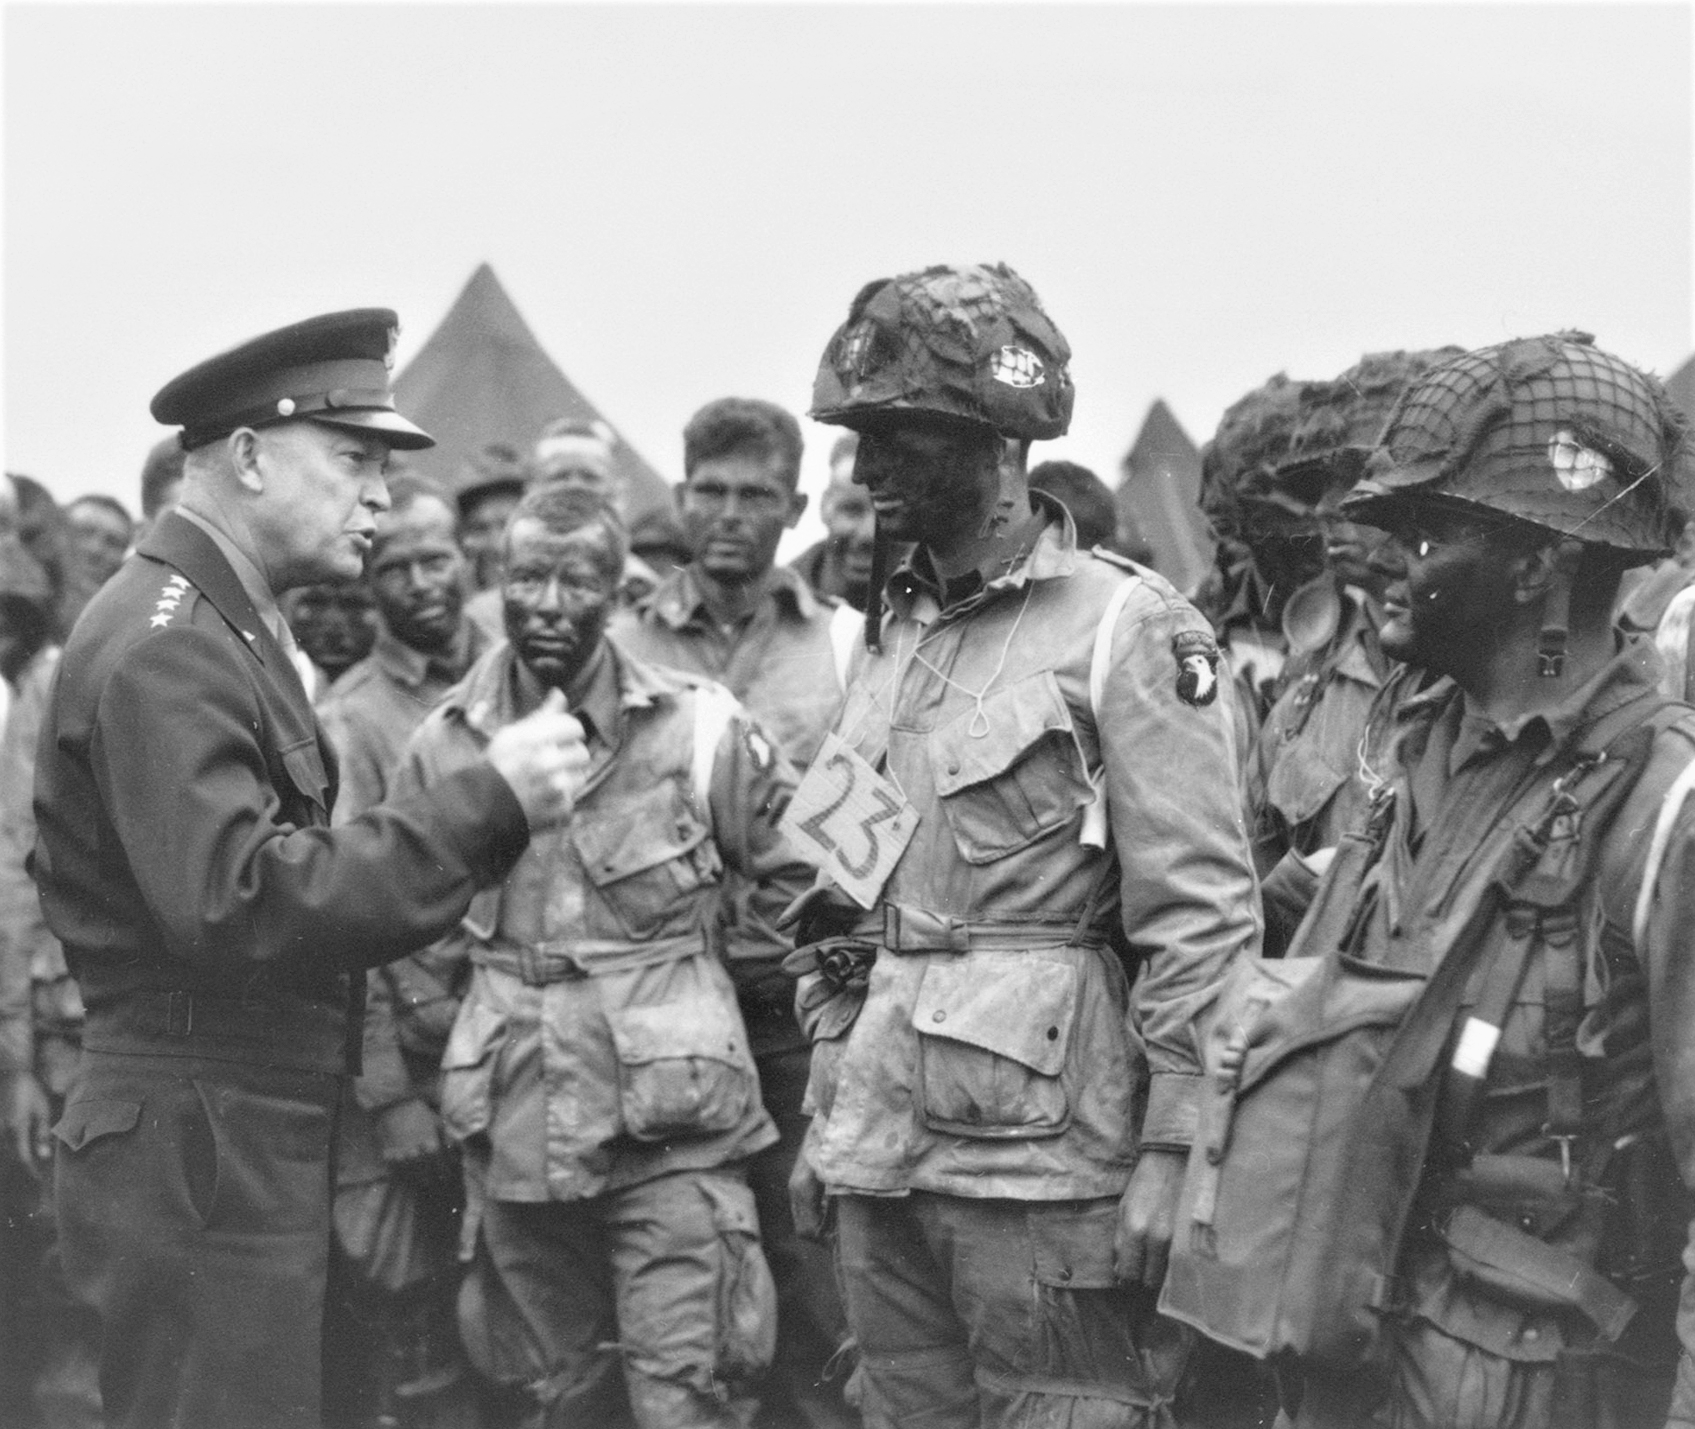 "General Dwight D. Eisenhower addresses the men of the 101st Airborne prior to the invasion of Normandy on D-Day, June 6, 1944: ""I have full confidence in your courage, devotion to duty and skill in battle. We will accept nothing less than full Victory! Good Luck! And let us all beseech the blessing of Almighty God upon this great and noble undertaking!"""